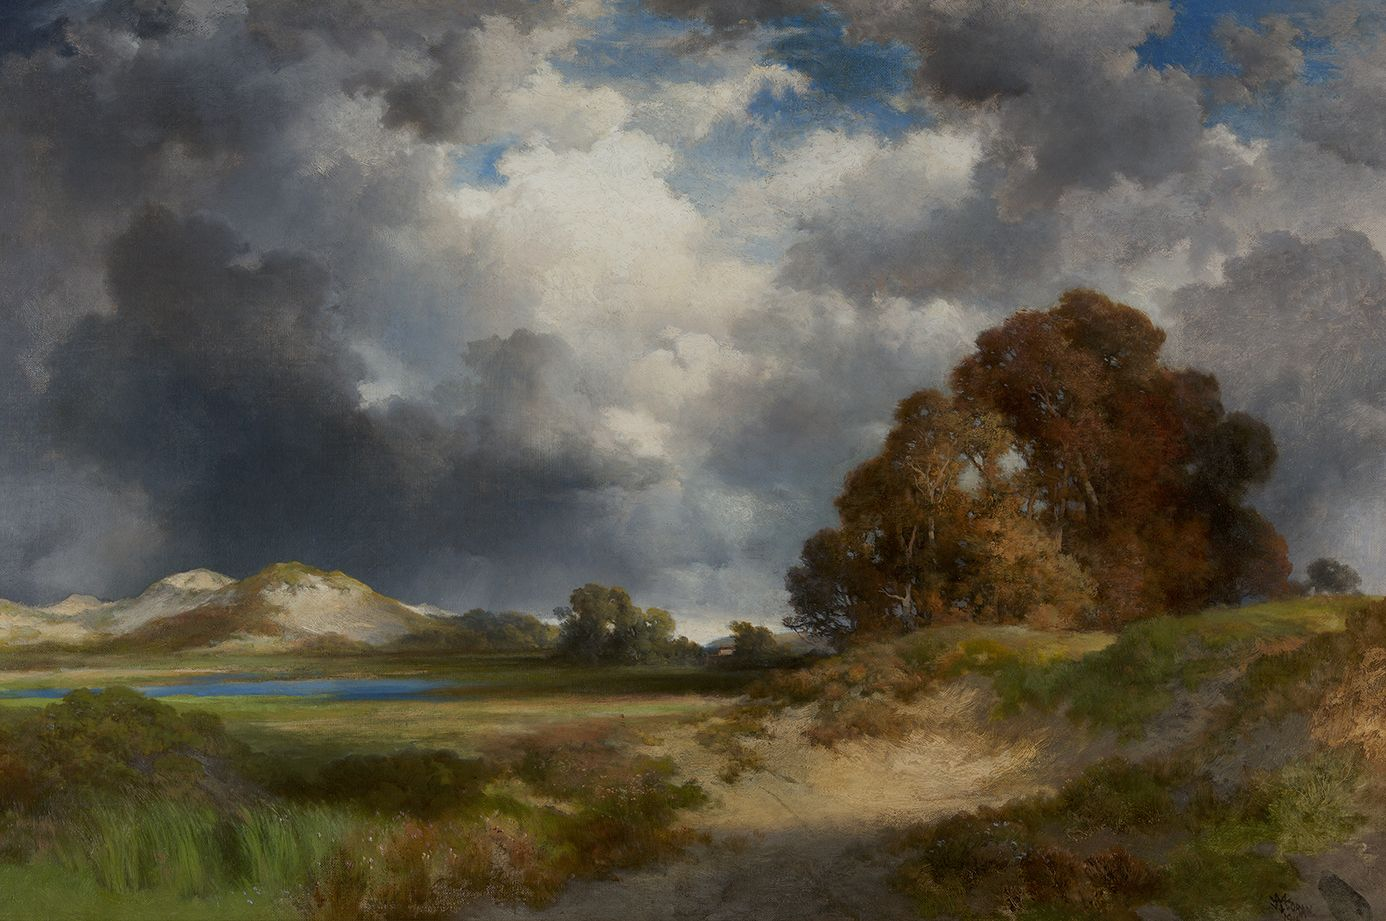 Thomas Moran (1837-1926), East Hampton, 1916